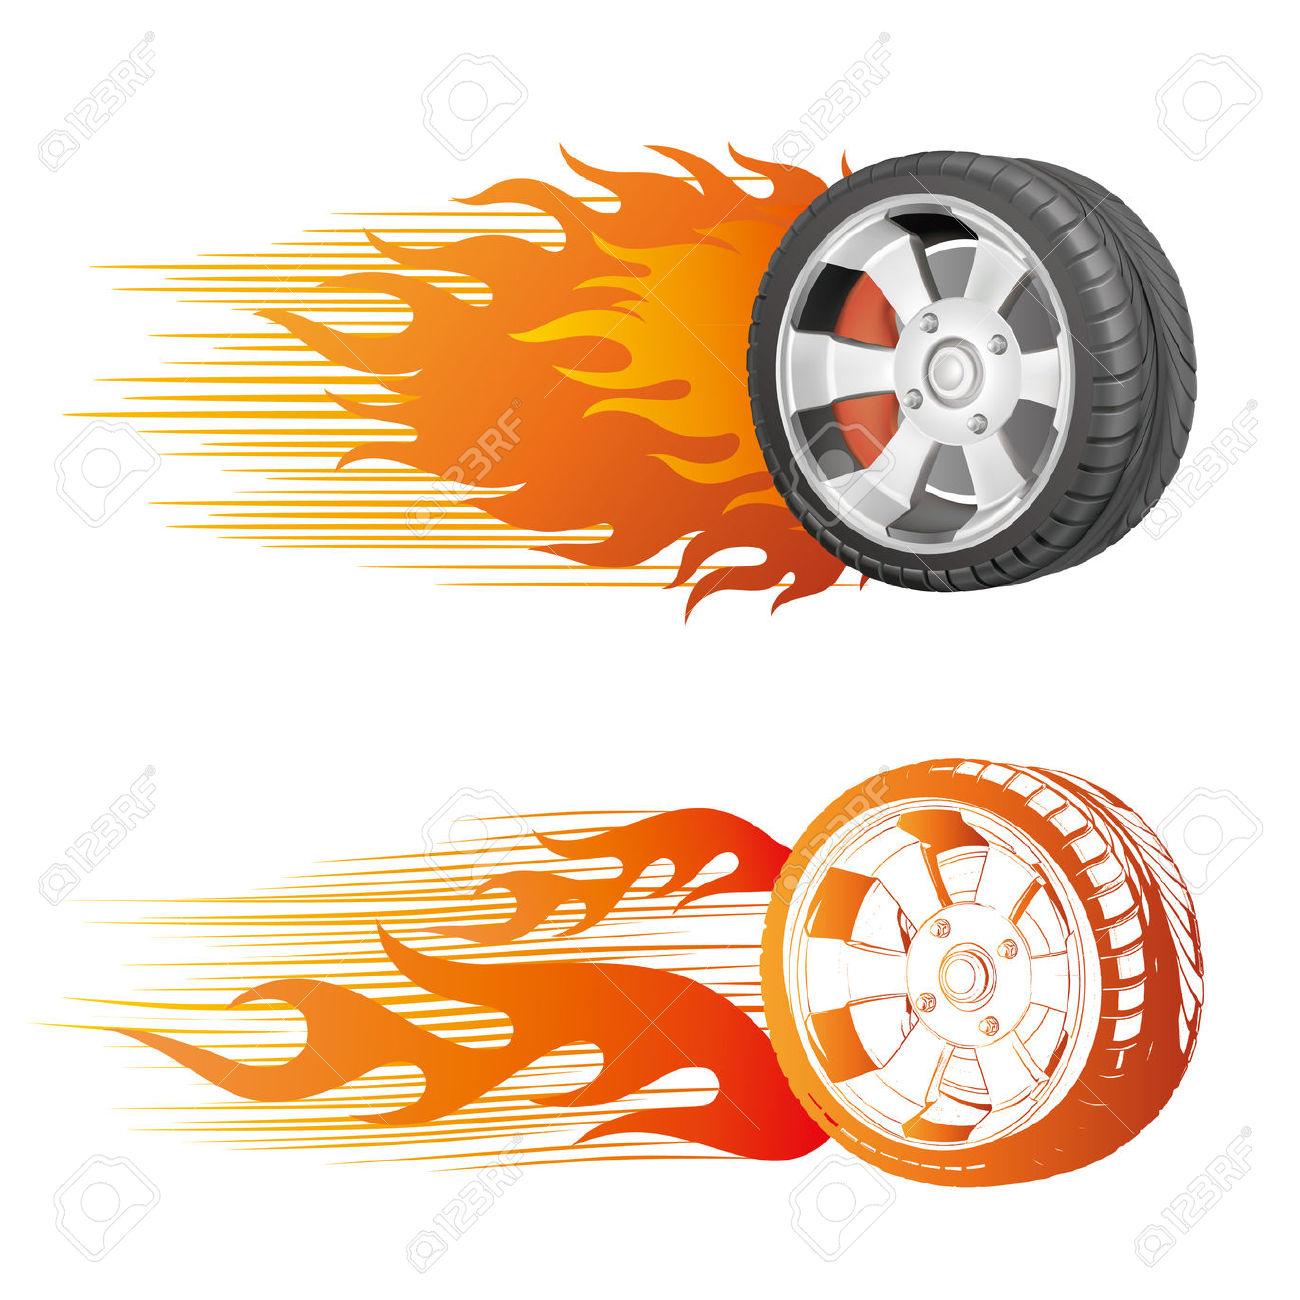 Fiery Racing Tire Royalty Free Cliparts, Vectors, And Stock.